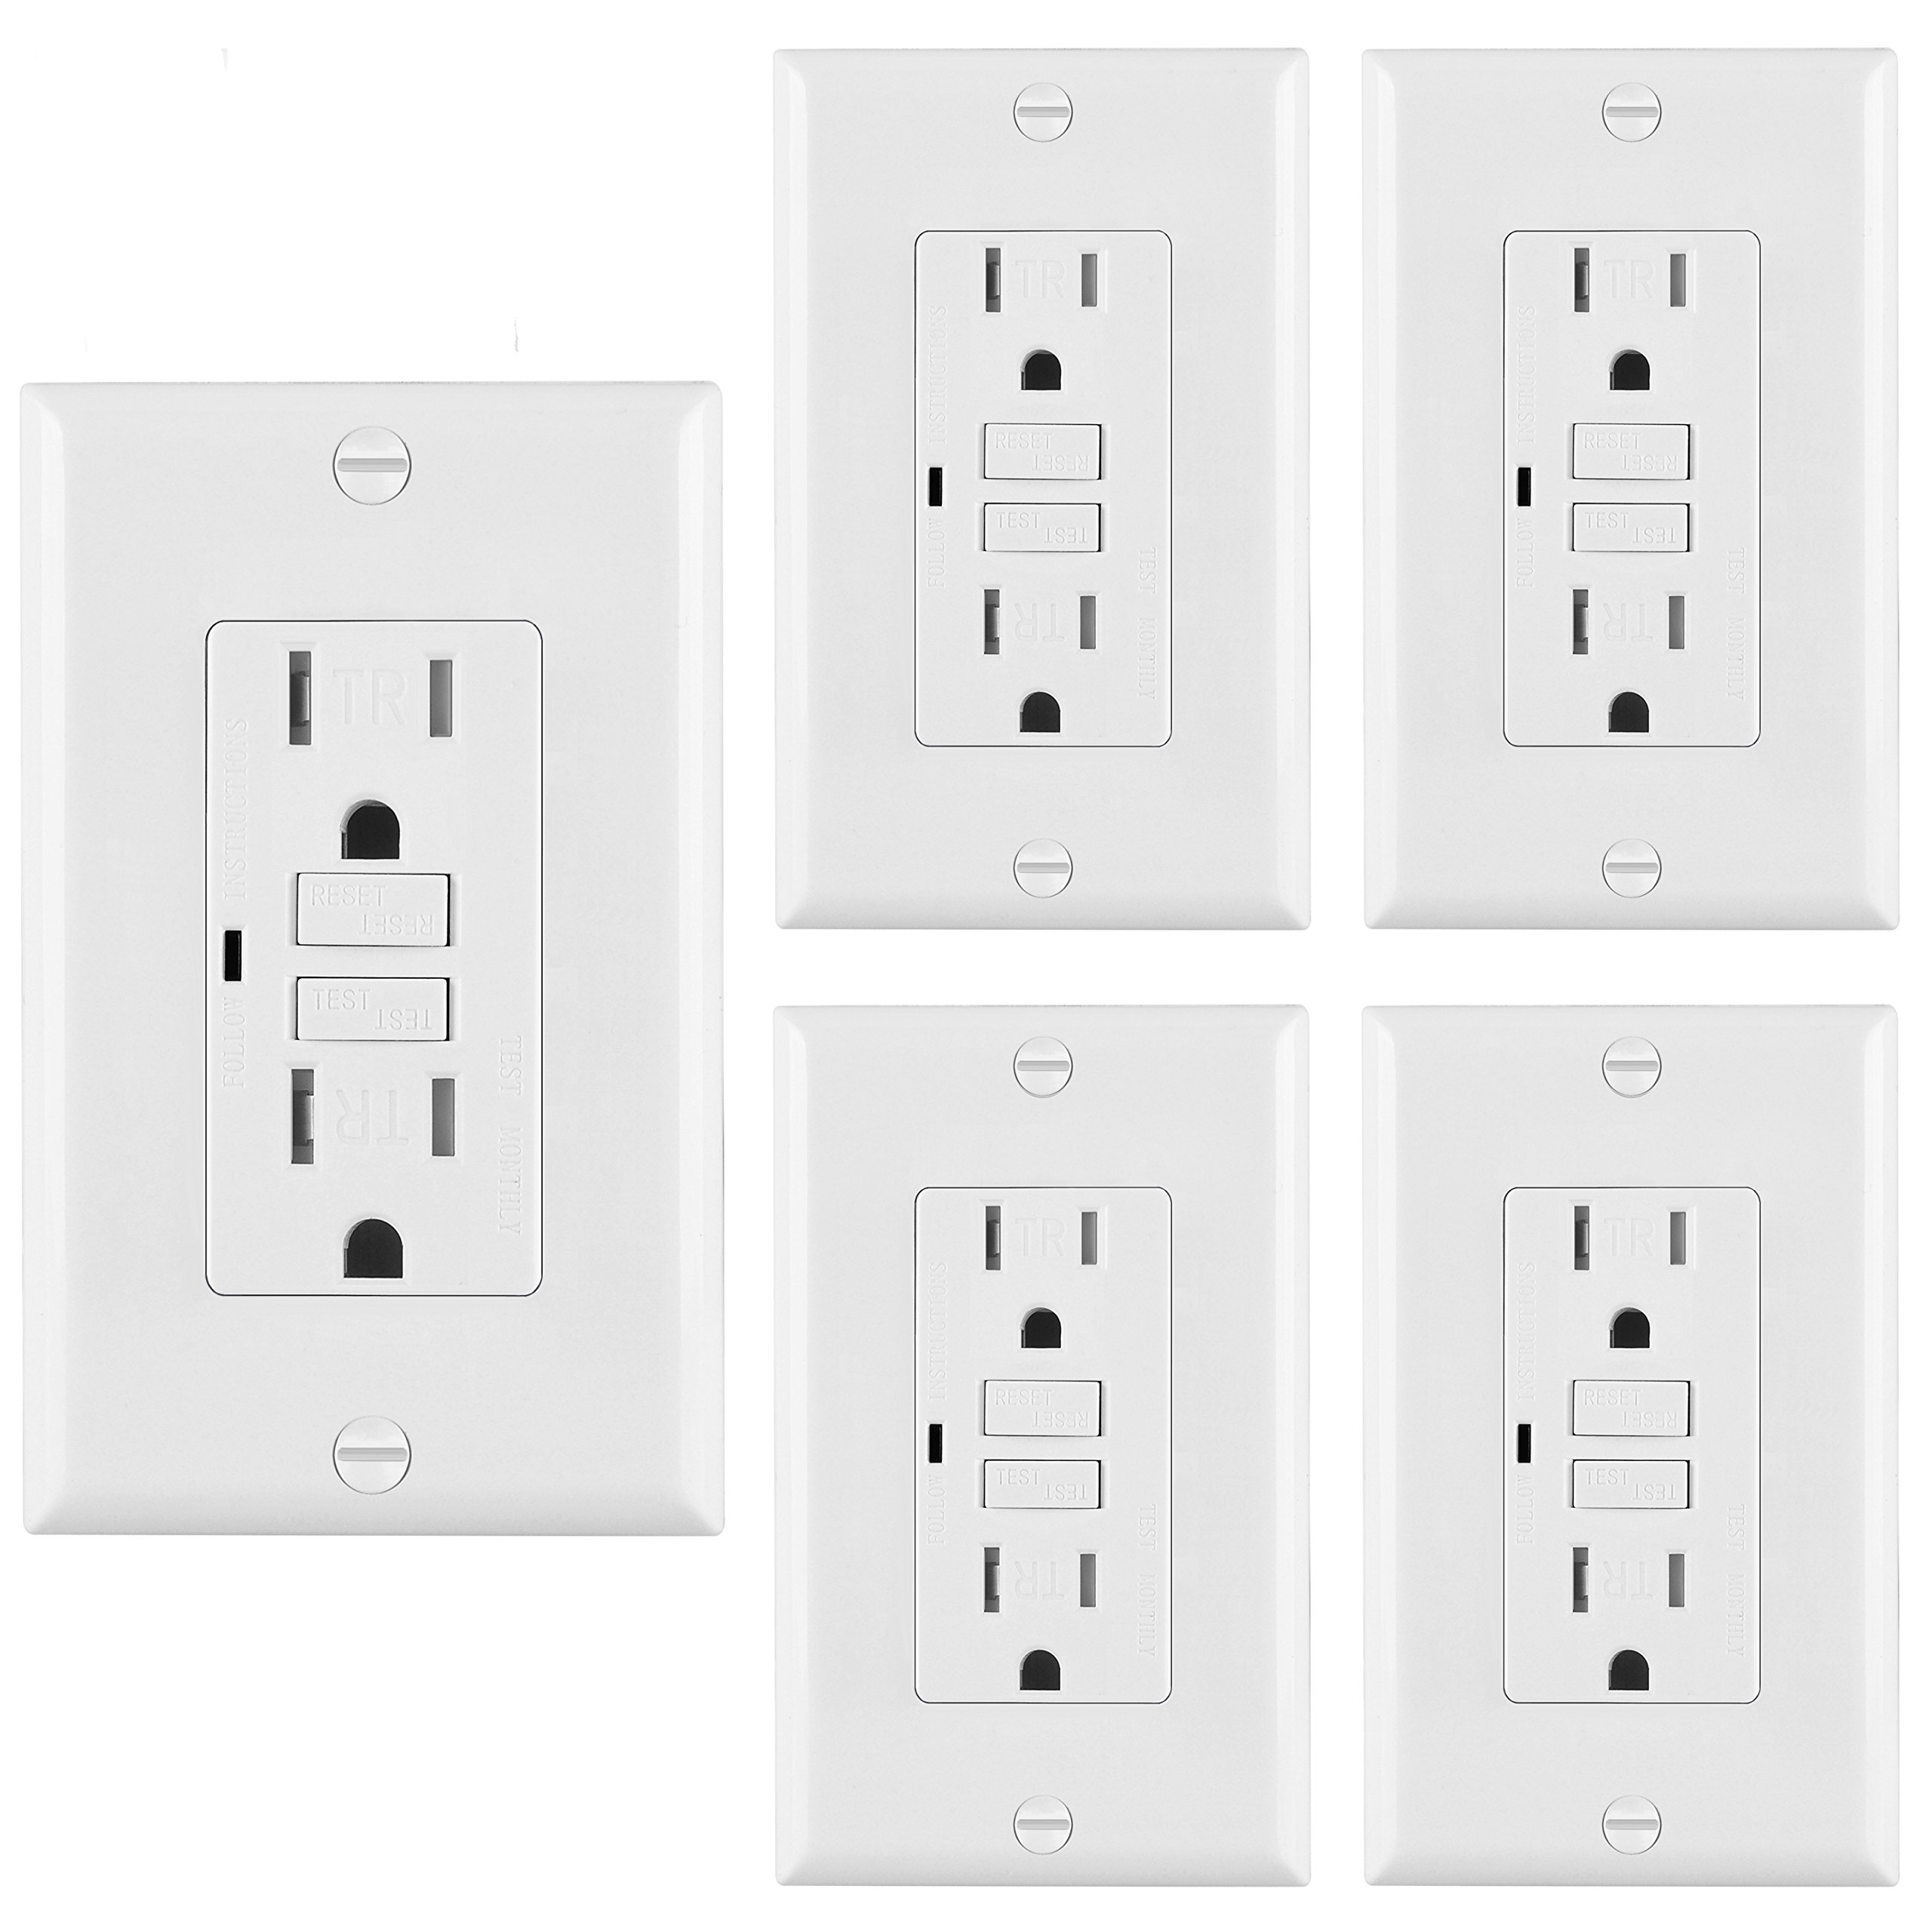 [5 Pack] BESTTEN Self-Test Tamper Resistant GFCI Receptacle Outlet with LED Power Indicator, 15 Amp 125 Volt, Decor Wall Plate Included, Auto-Test Function, UL Certified, White